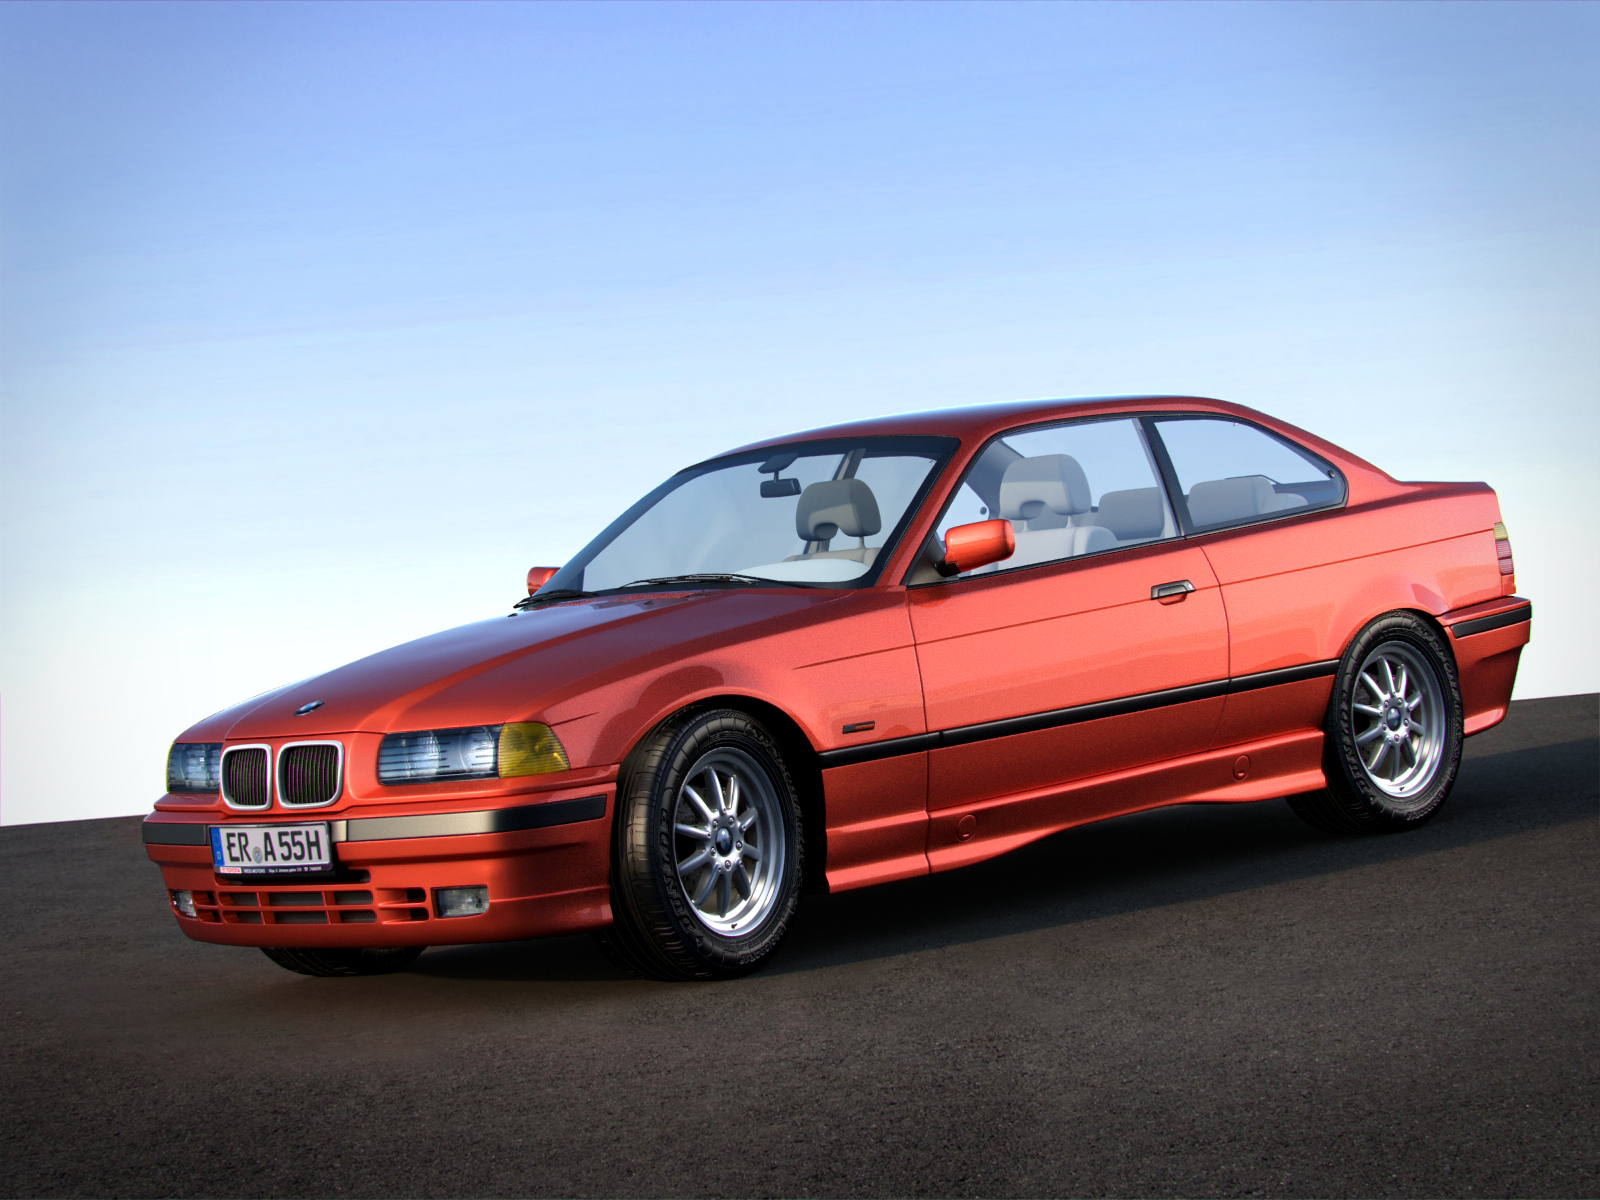 bmw 3 series e36 coupe by rtework 3docean. Black Bedroom Furniture Sets. Home Design Ideas